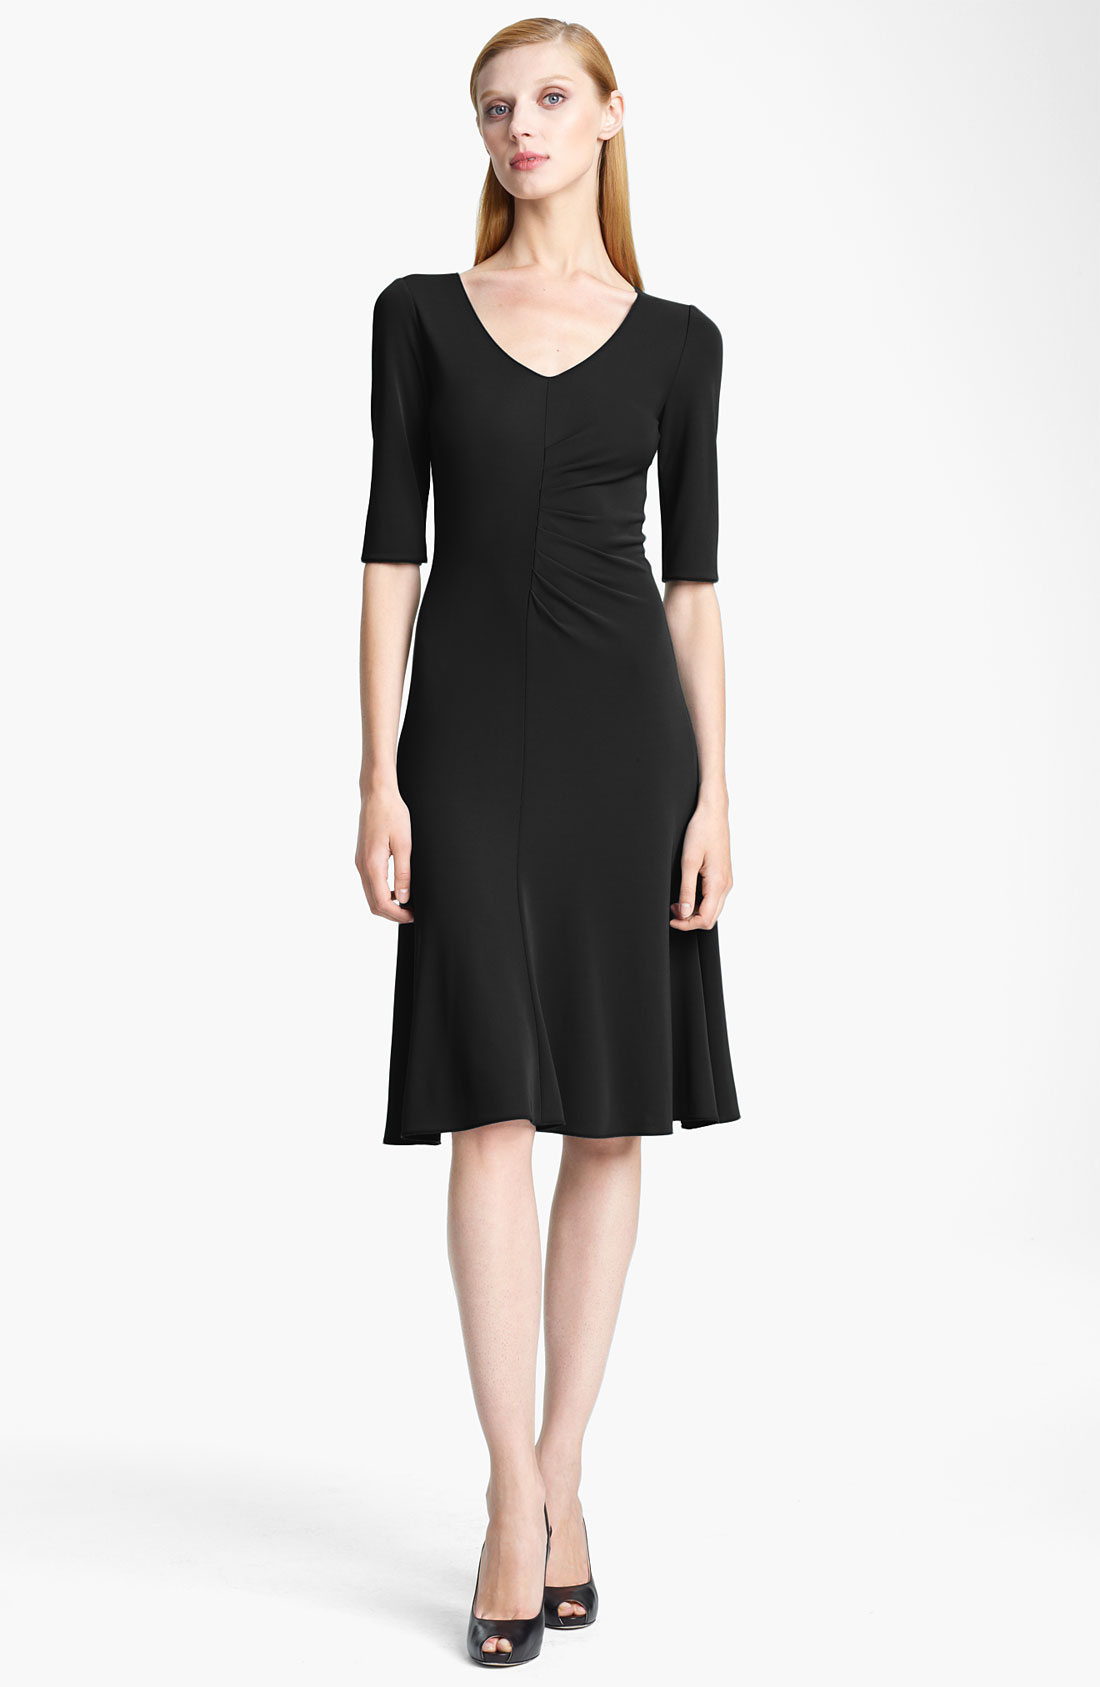 Where to buy funeral dress